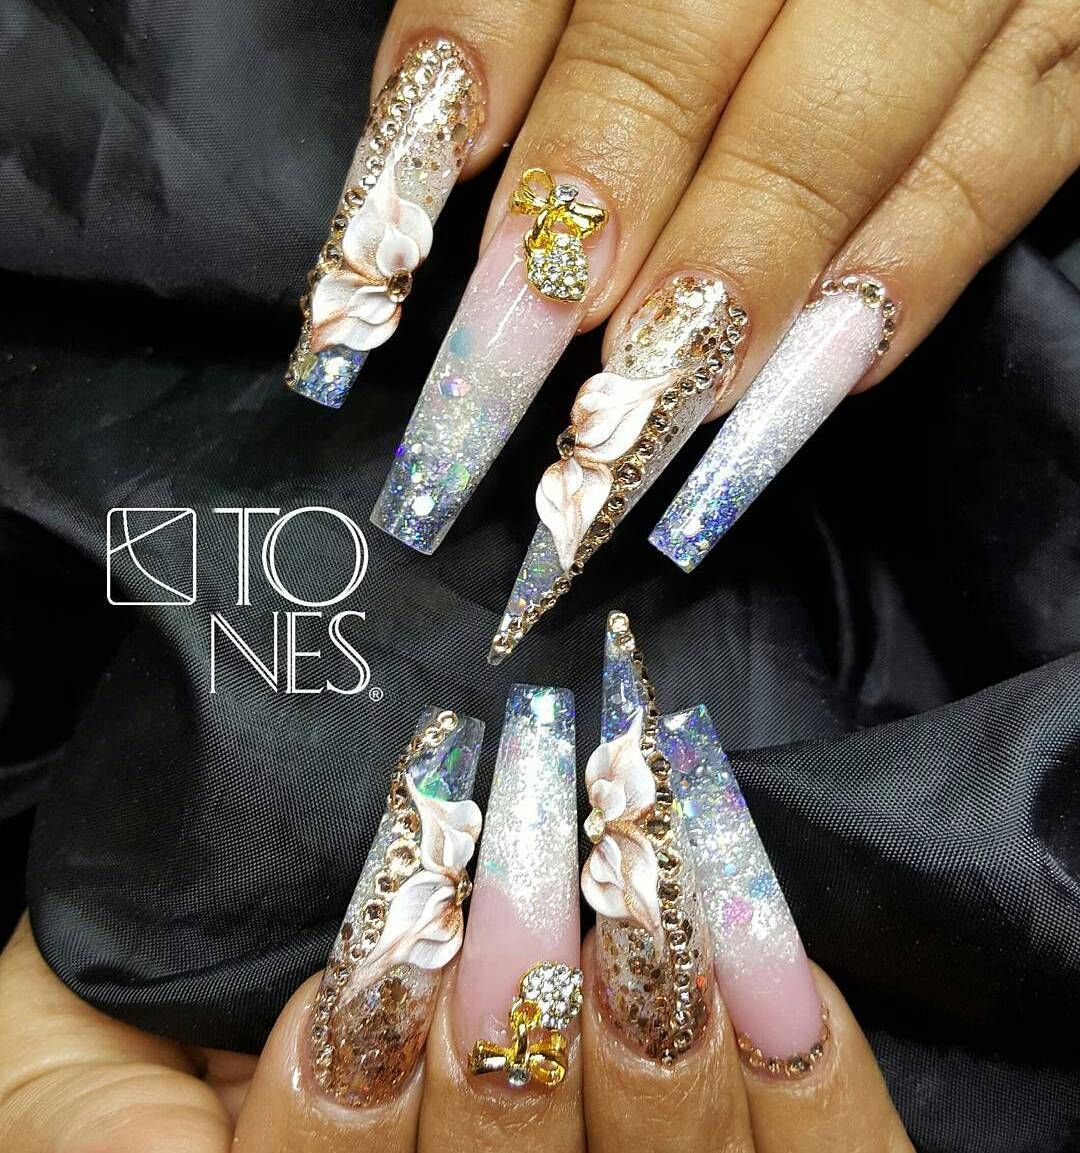 Pin by IRMA CEJA on nails Pinterest Bright Gorgeous nails and